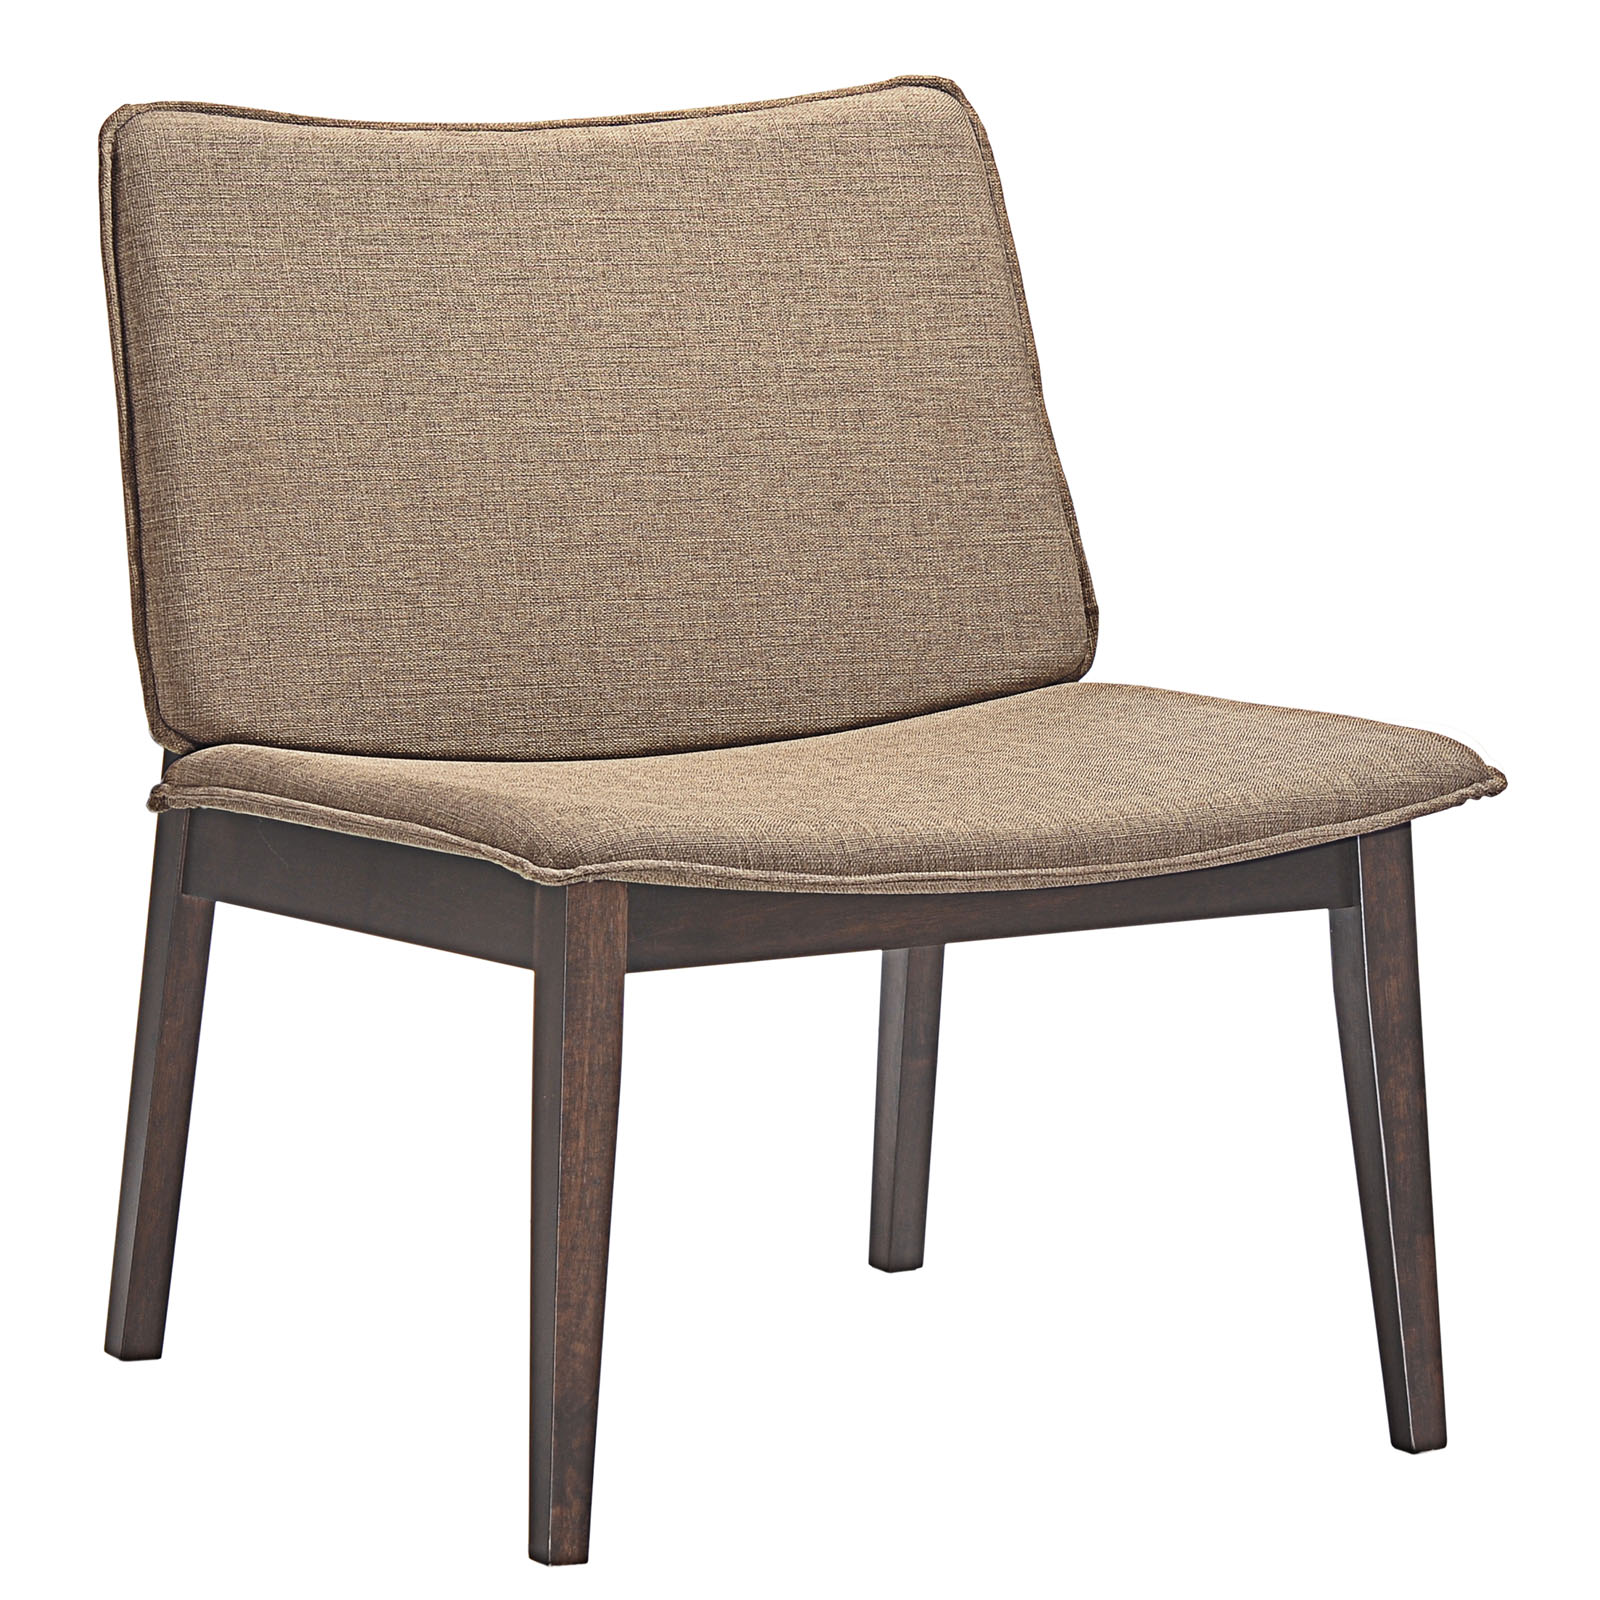 Modway Evade Lounge Chair EEI-1612-WAL-LAT